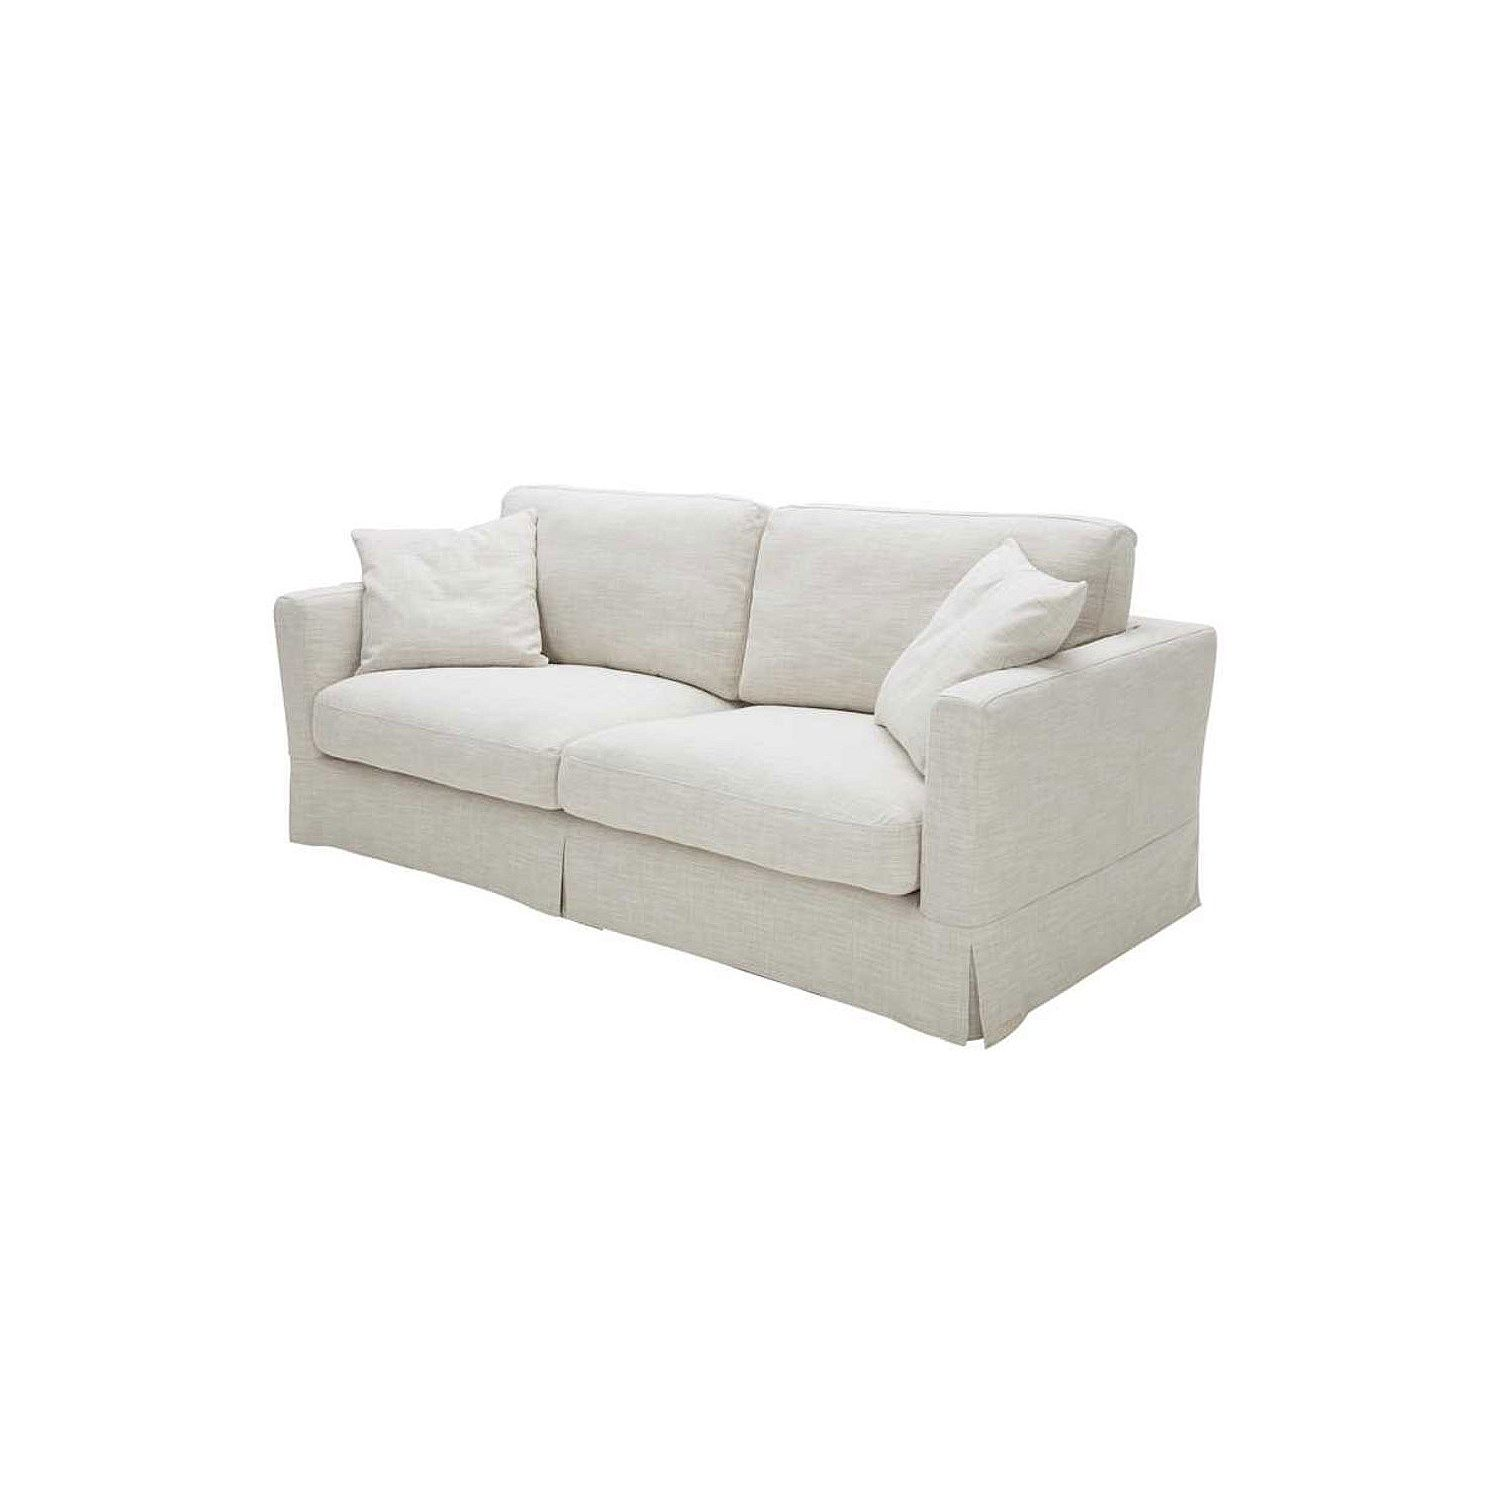 106 reference of couch covers freedom furniture